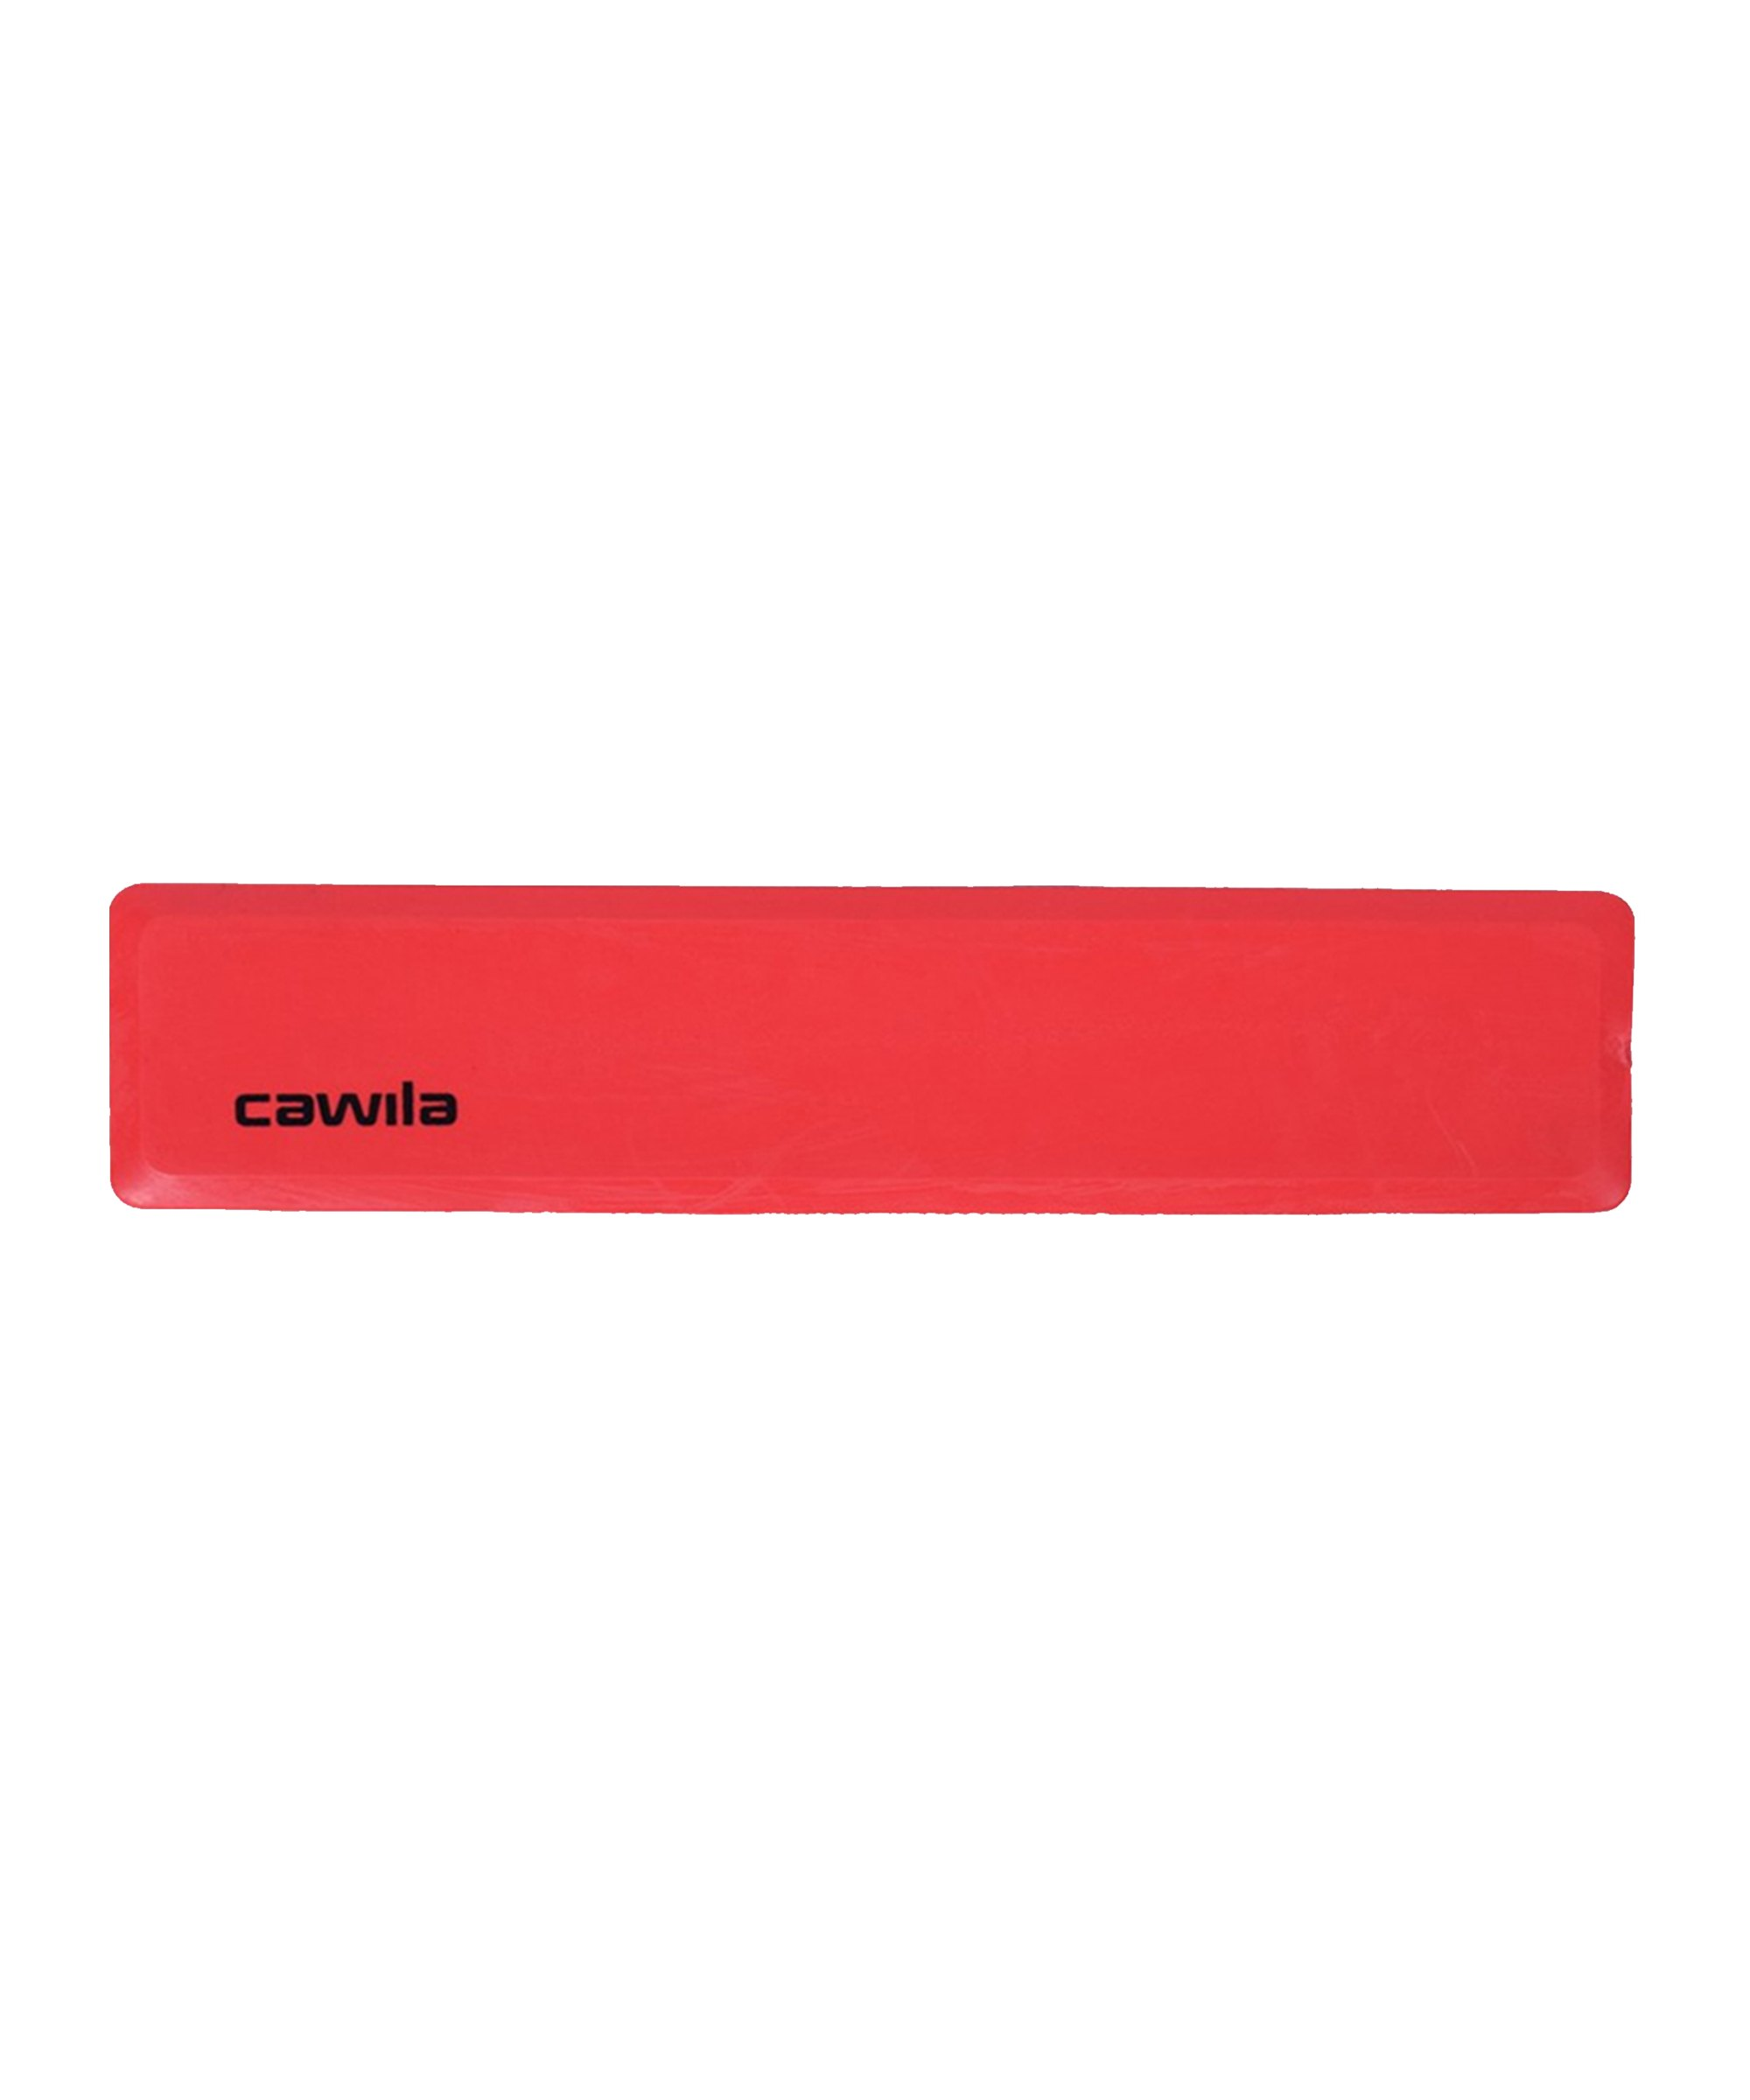 Cawila Marker-System Gerade 34 x 75cm Rot - rot